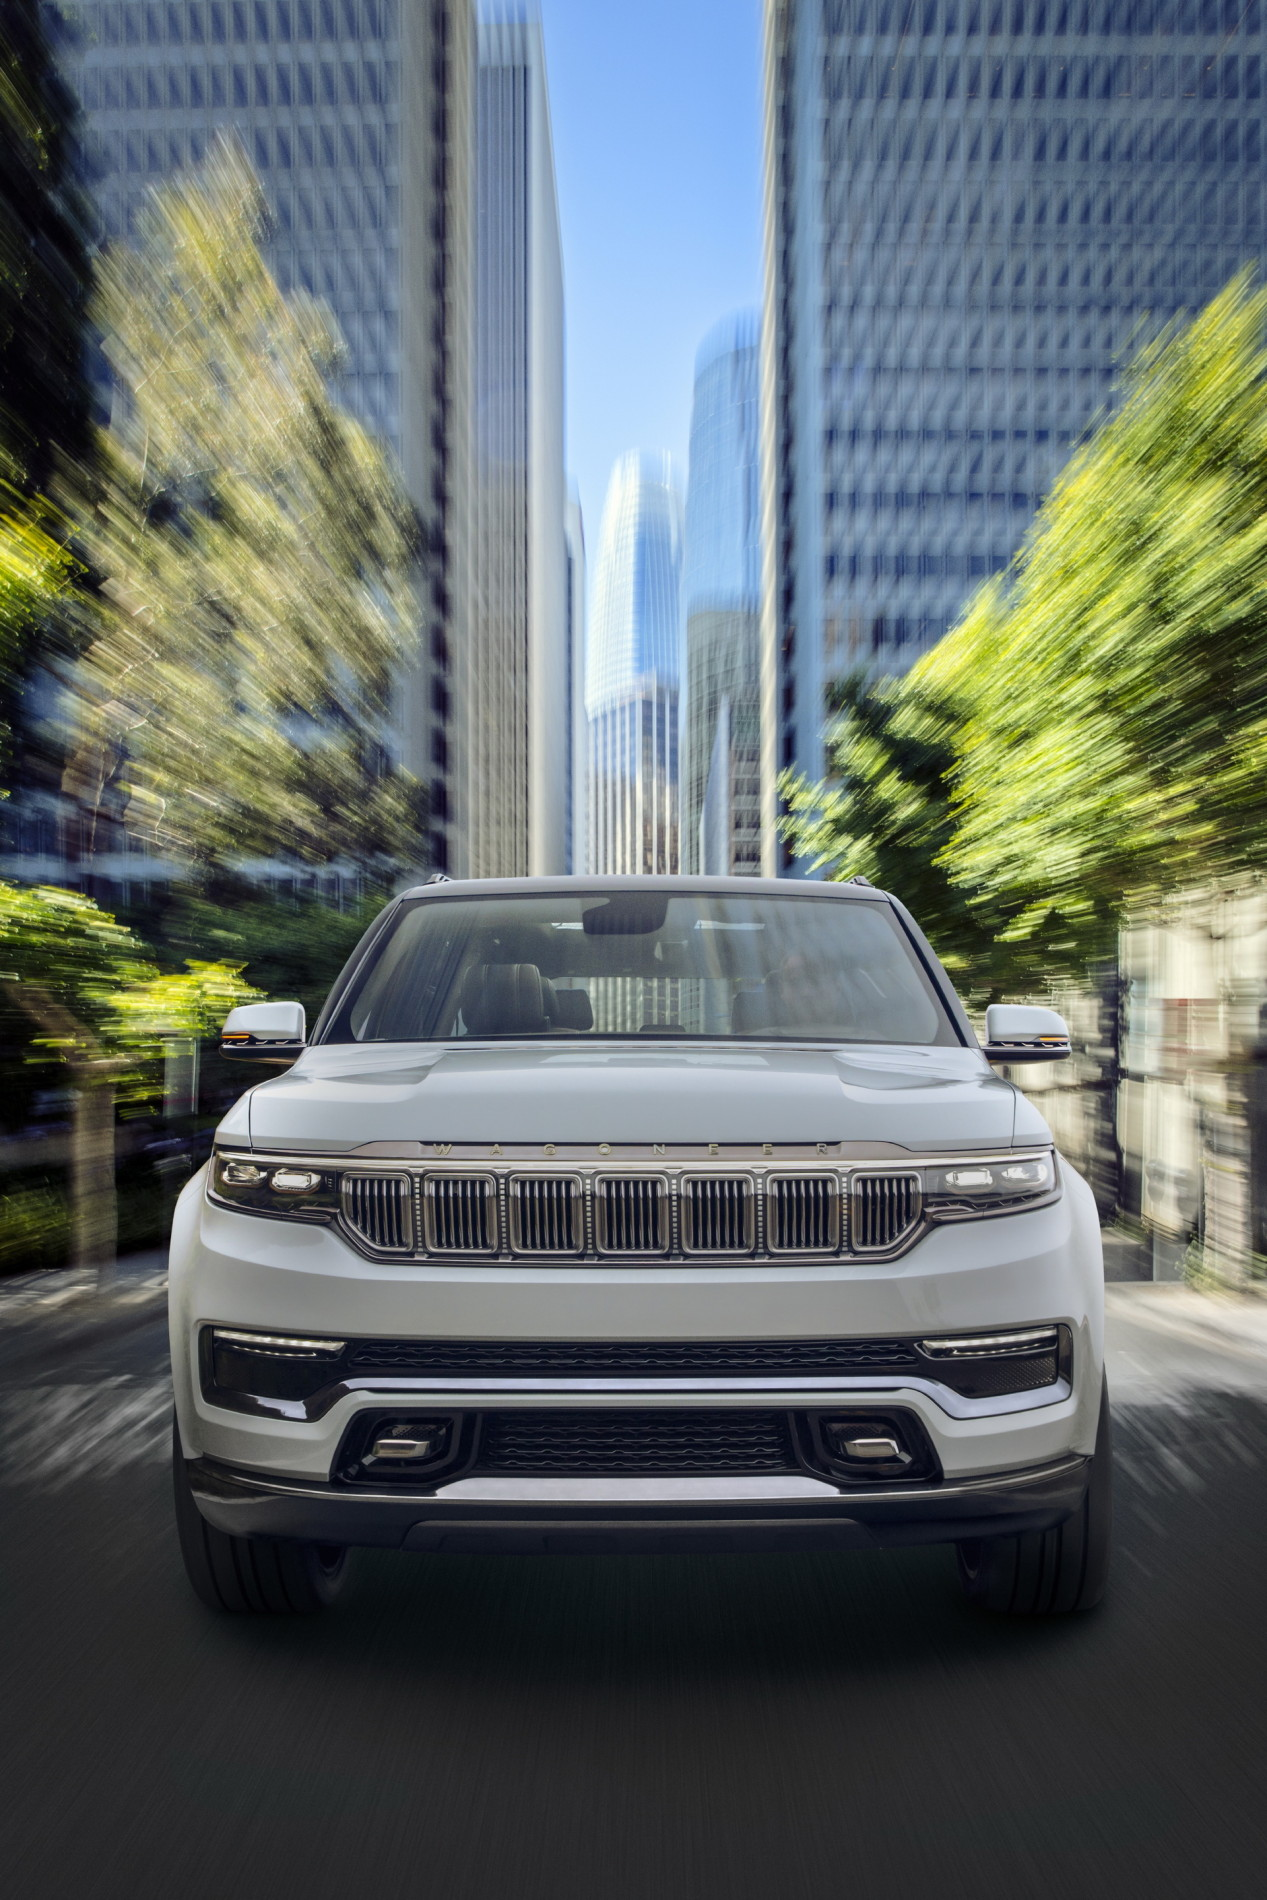 Jeep Grand Wagoneer Concept - Jeep Grand Wagoneer Concept